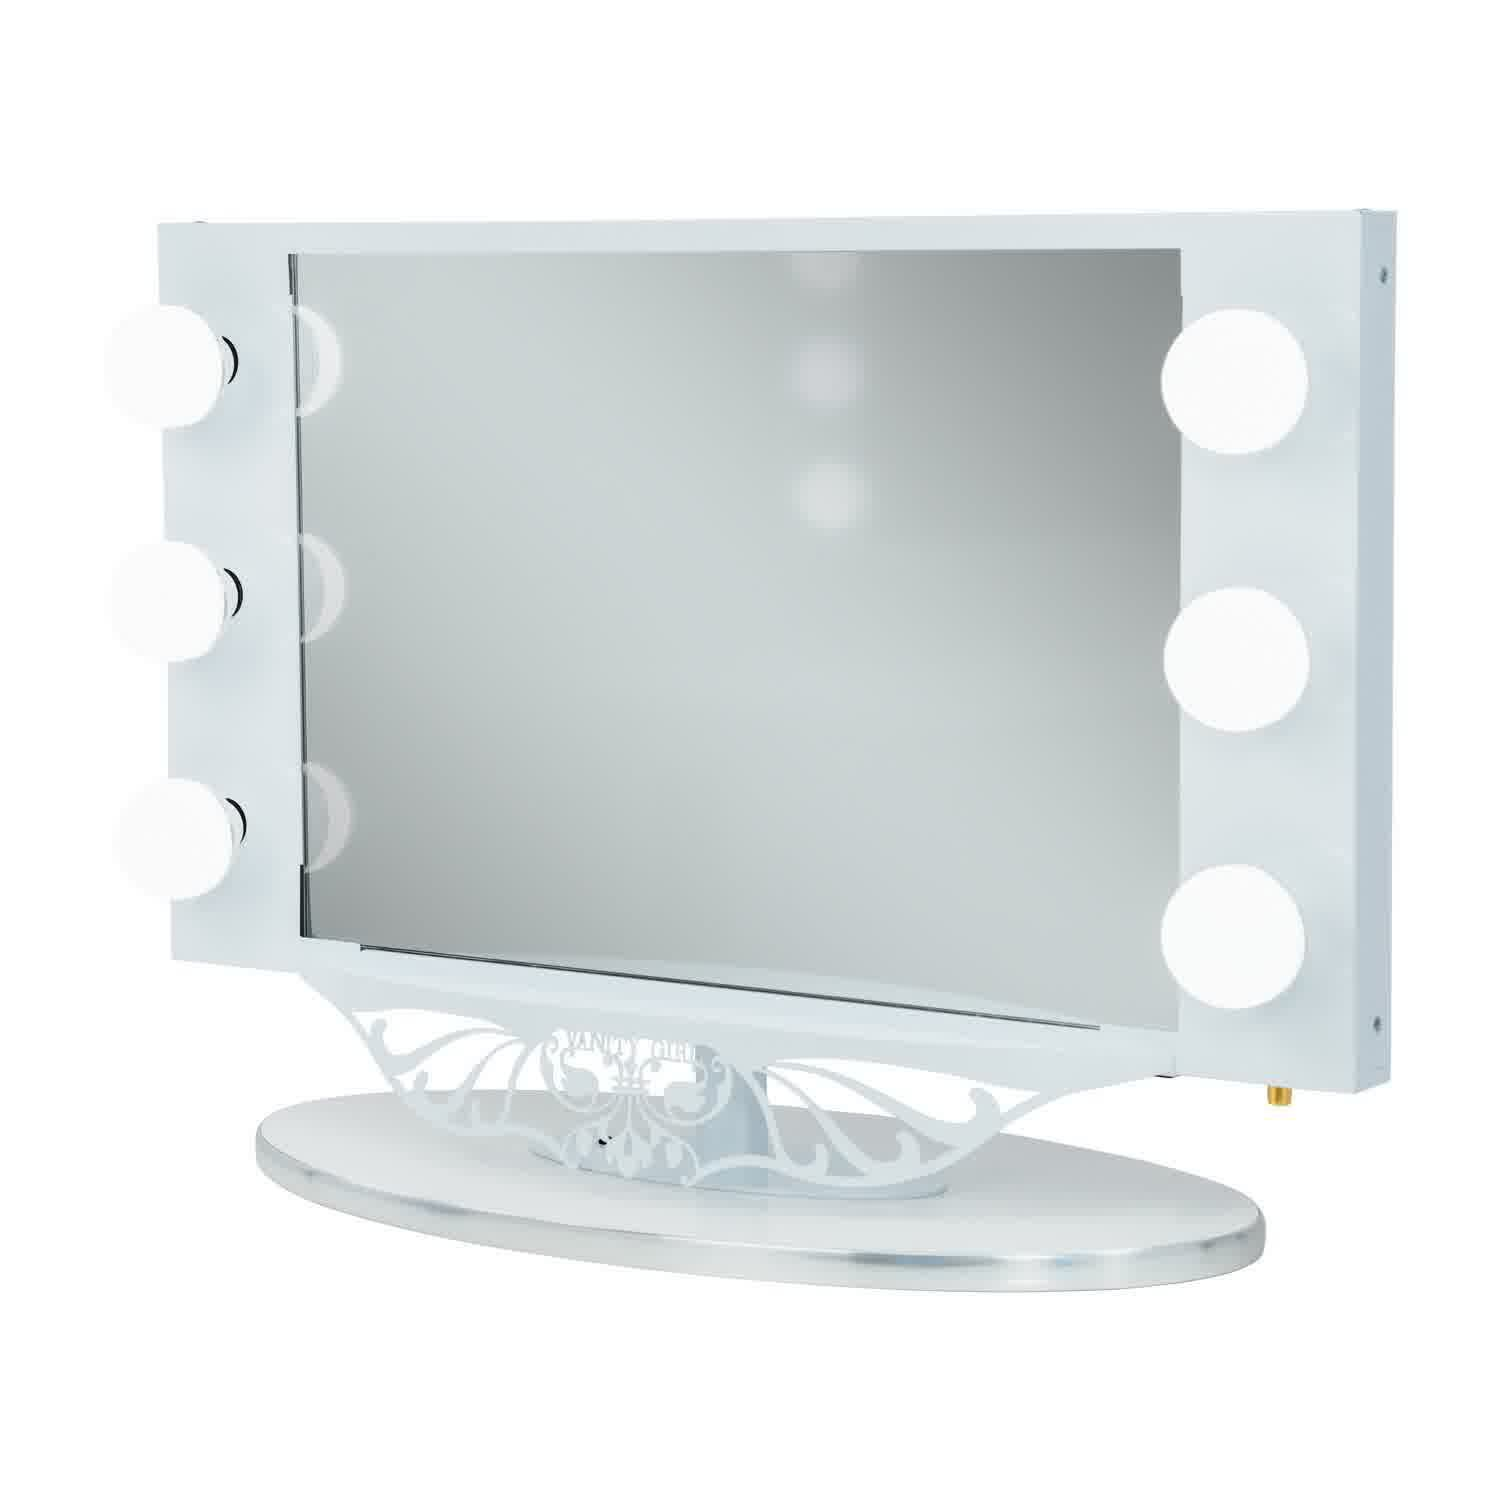 Lighted Vanity Mirror Large : Starlet Lighted Vanity Mirror in Simple Frame Design